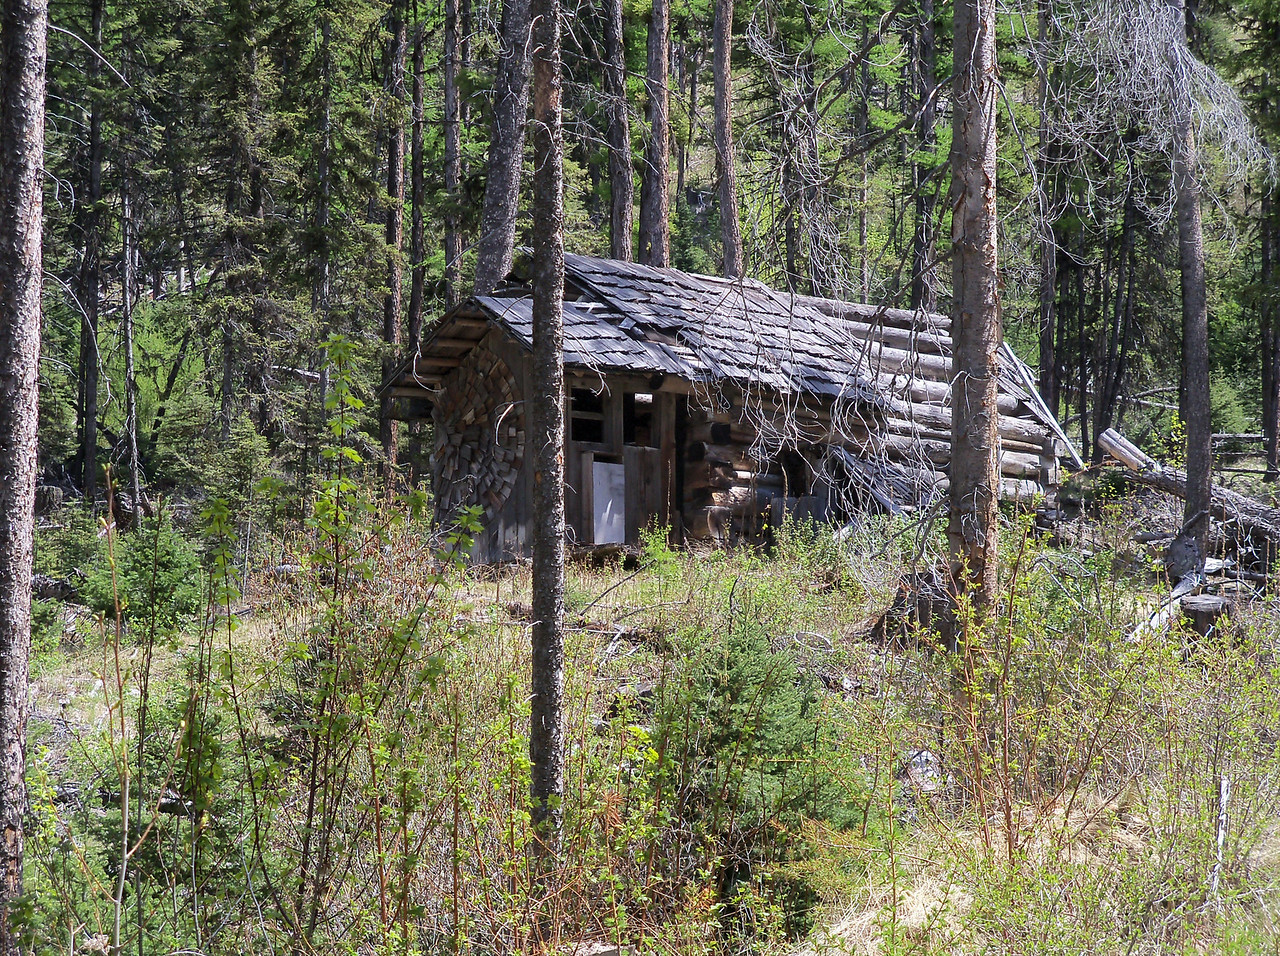 Many old cabins, we thought we  heard banjos off in the distance.